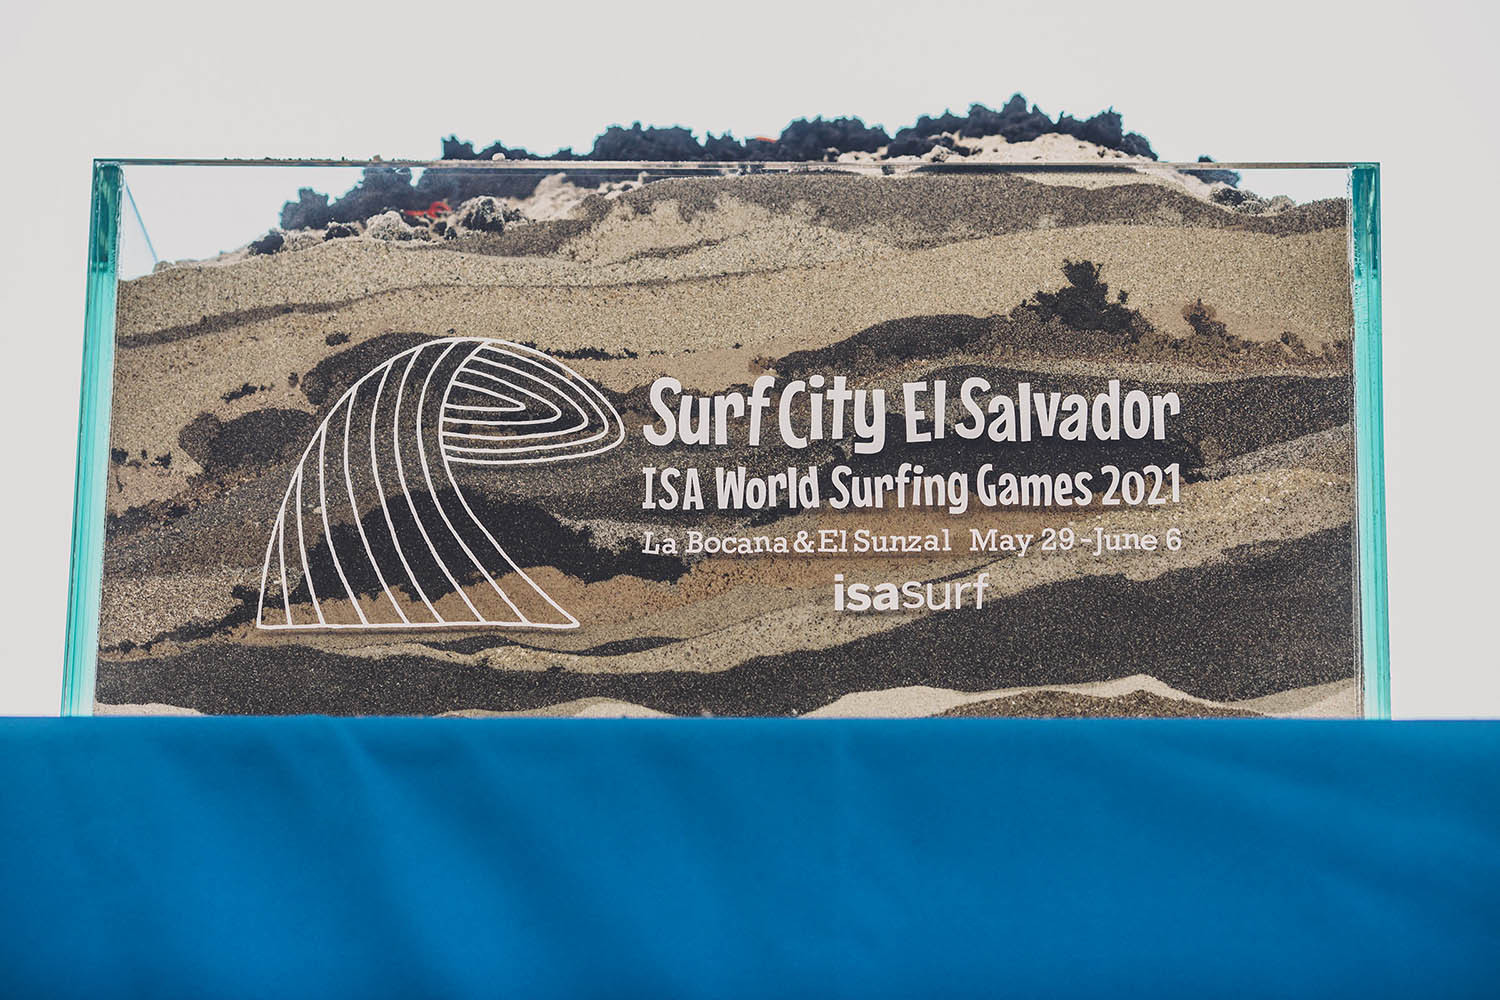 It is hoped that the World Surfing Games can